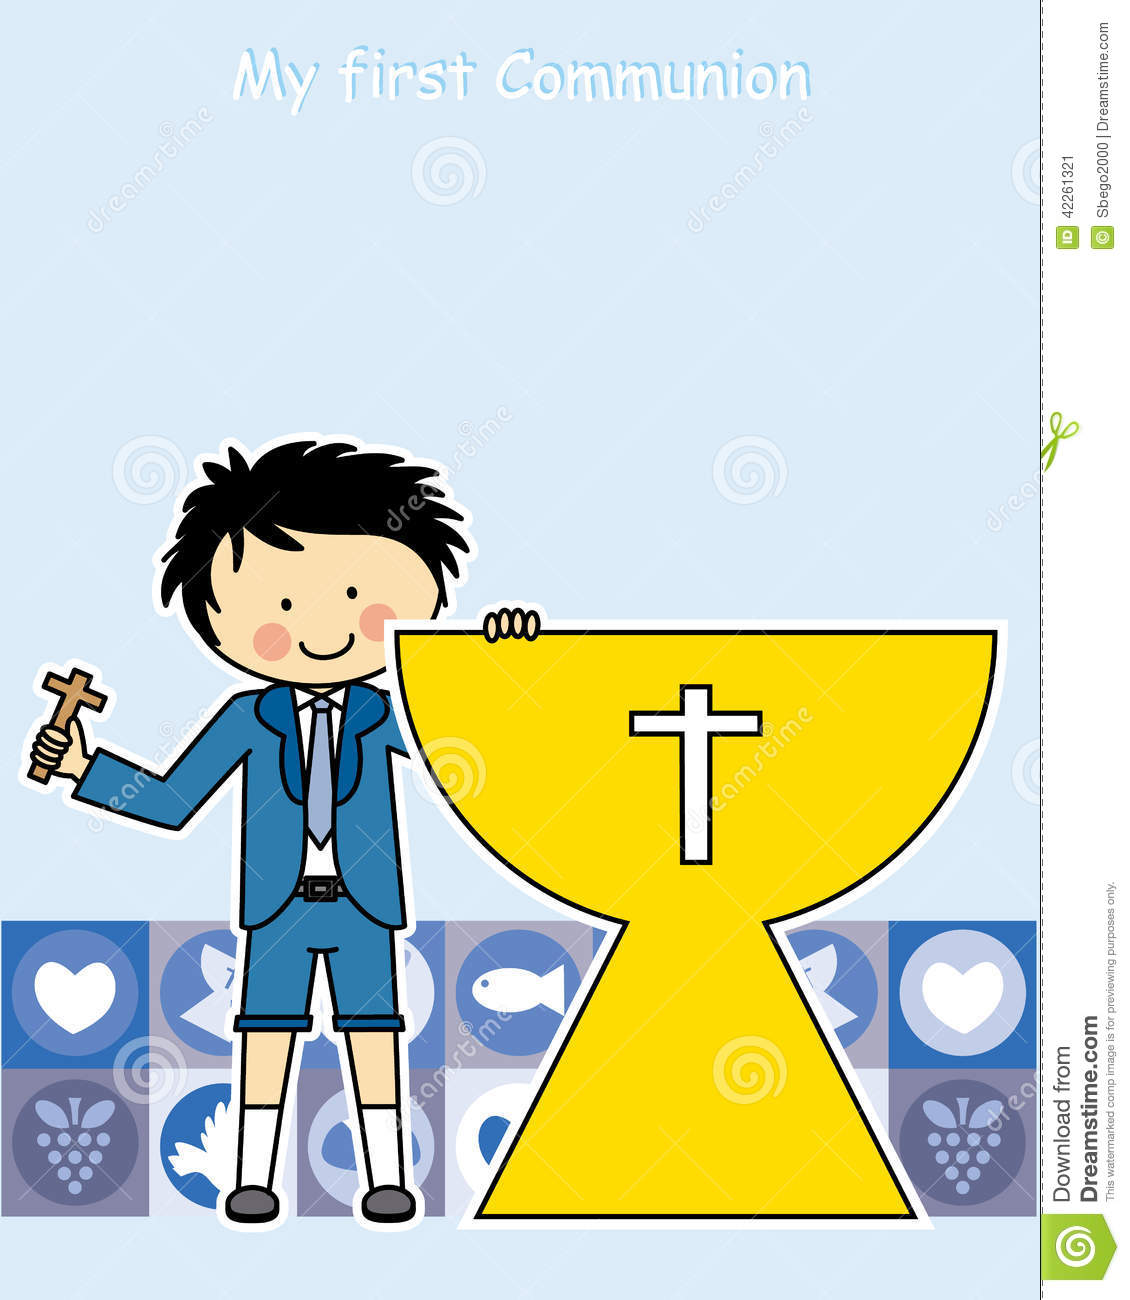 First Communion Invitations for Boys